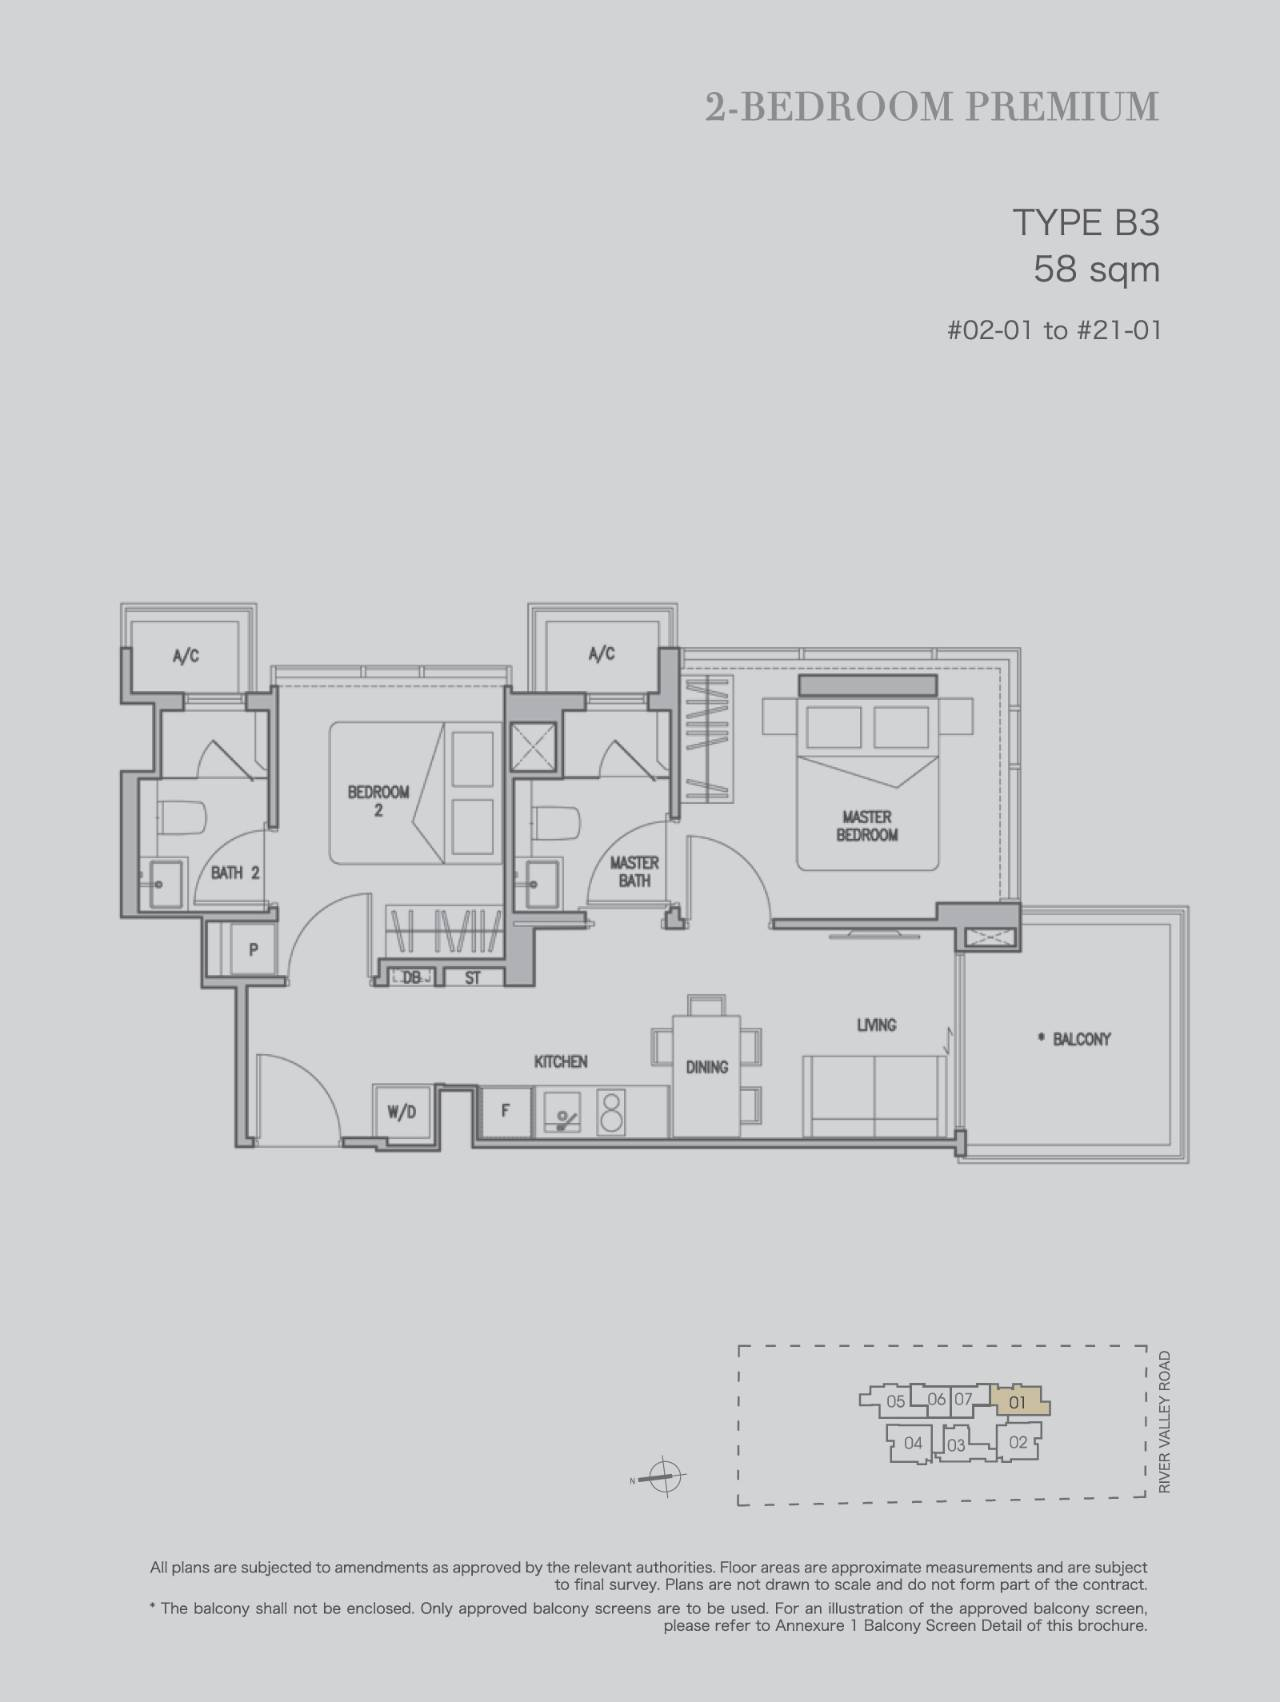 2 bedroom premium type b3 58sqm stack 1